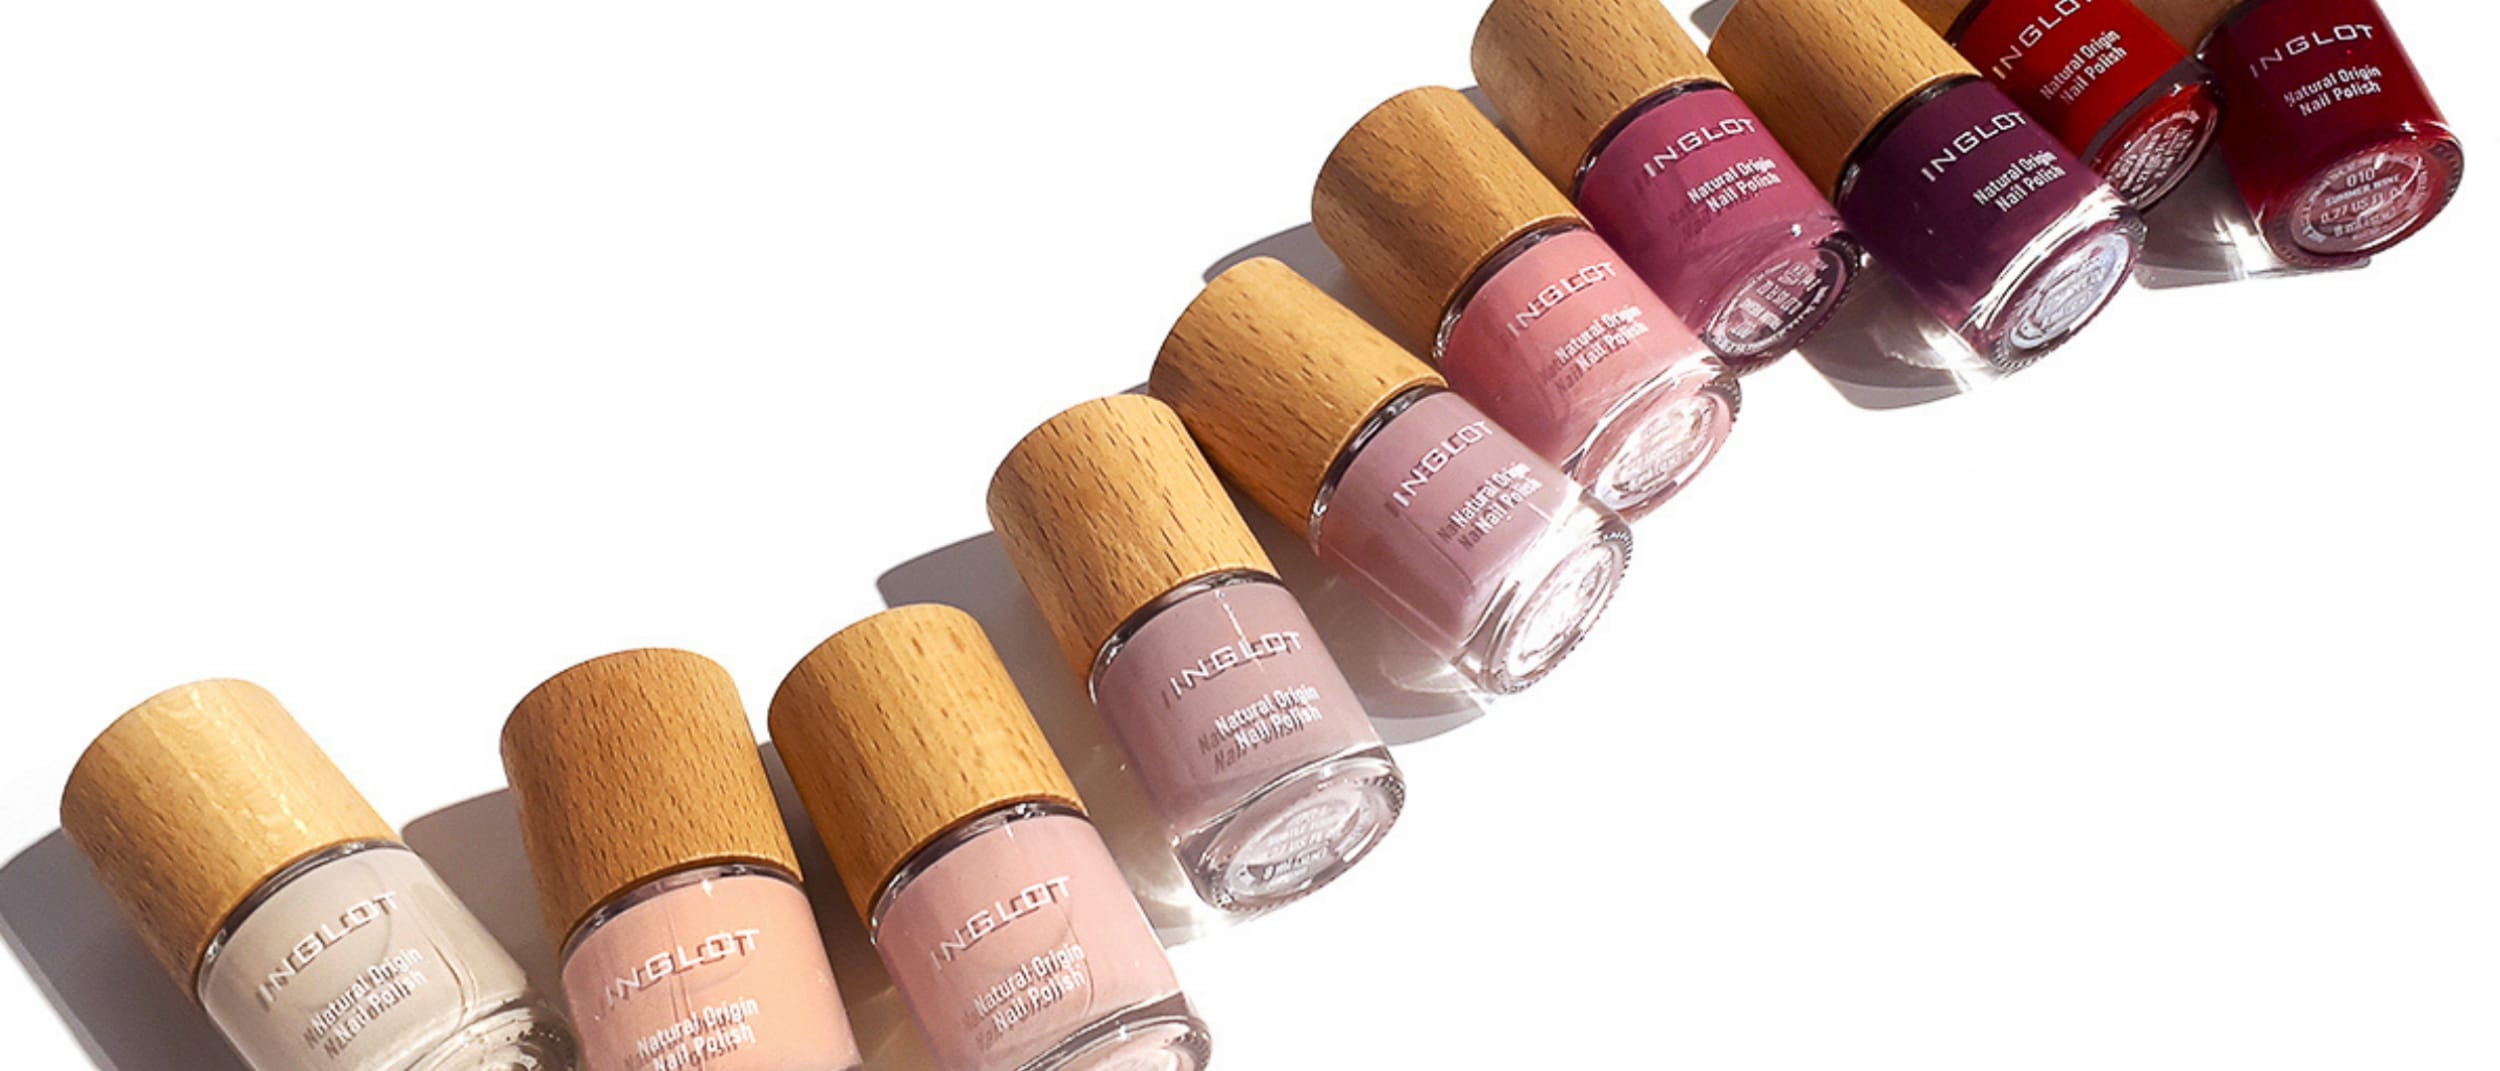 INGLOT: New in - Natural Origin Nail Polish